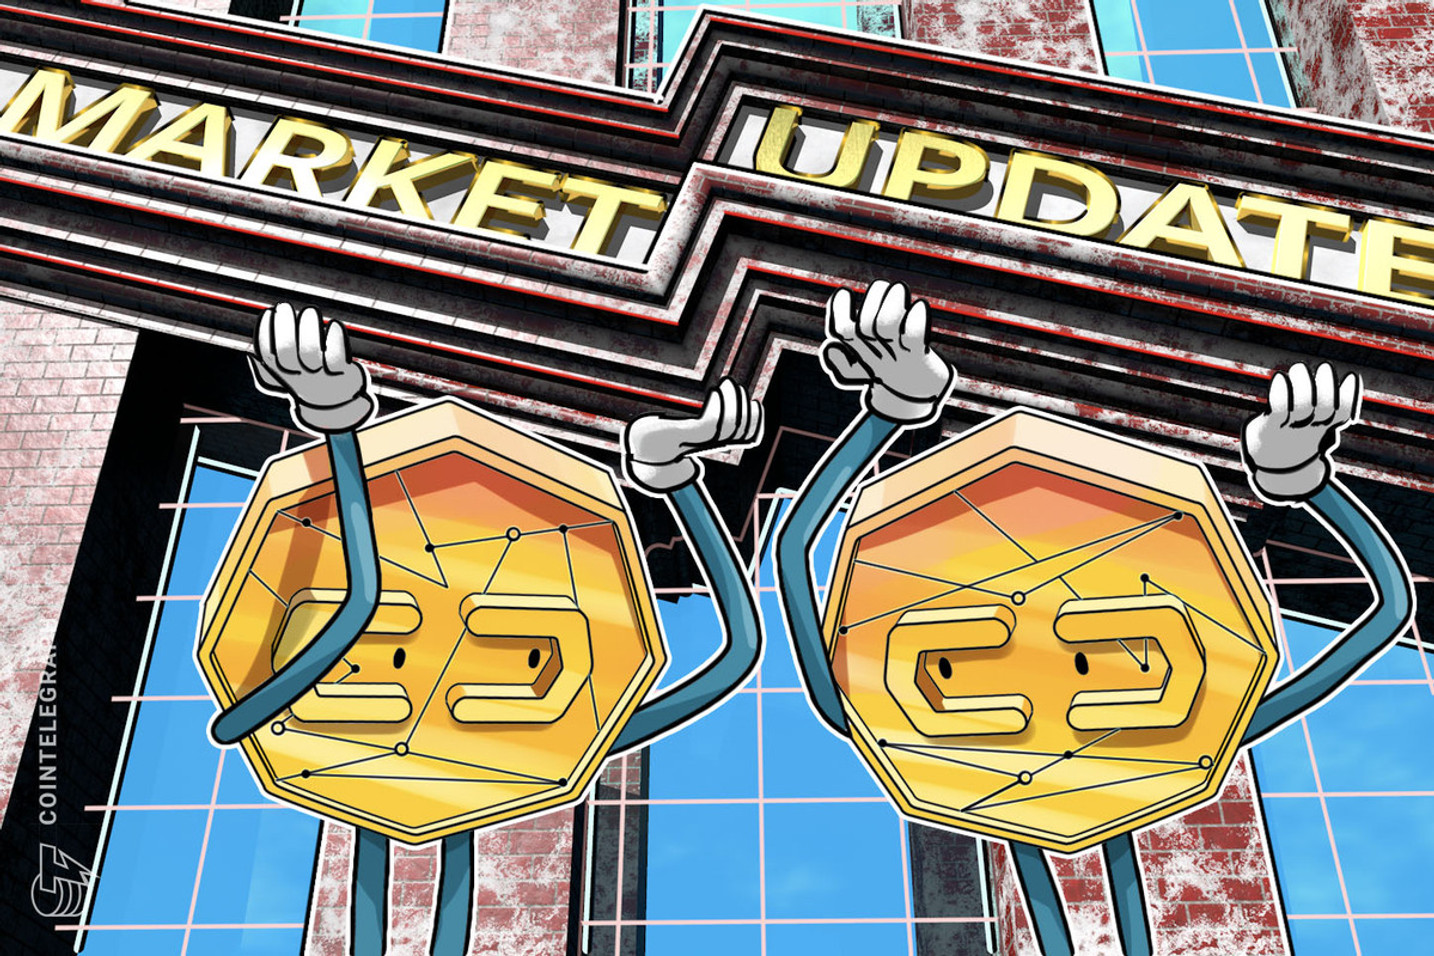 Top-20 Coins Experience Downward Trend, BTC Sticks Near $8,600